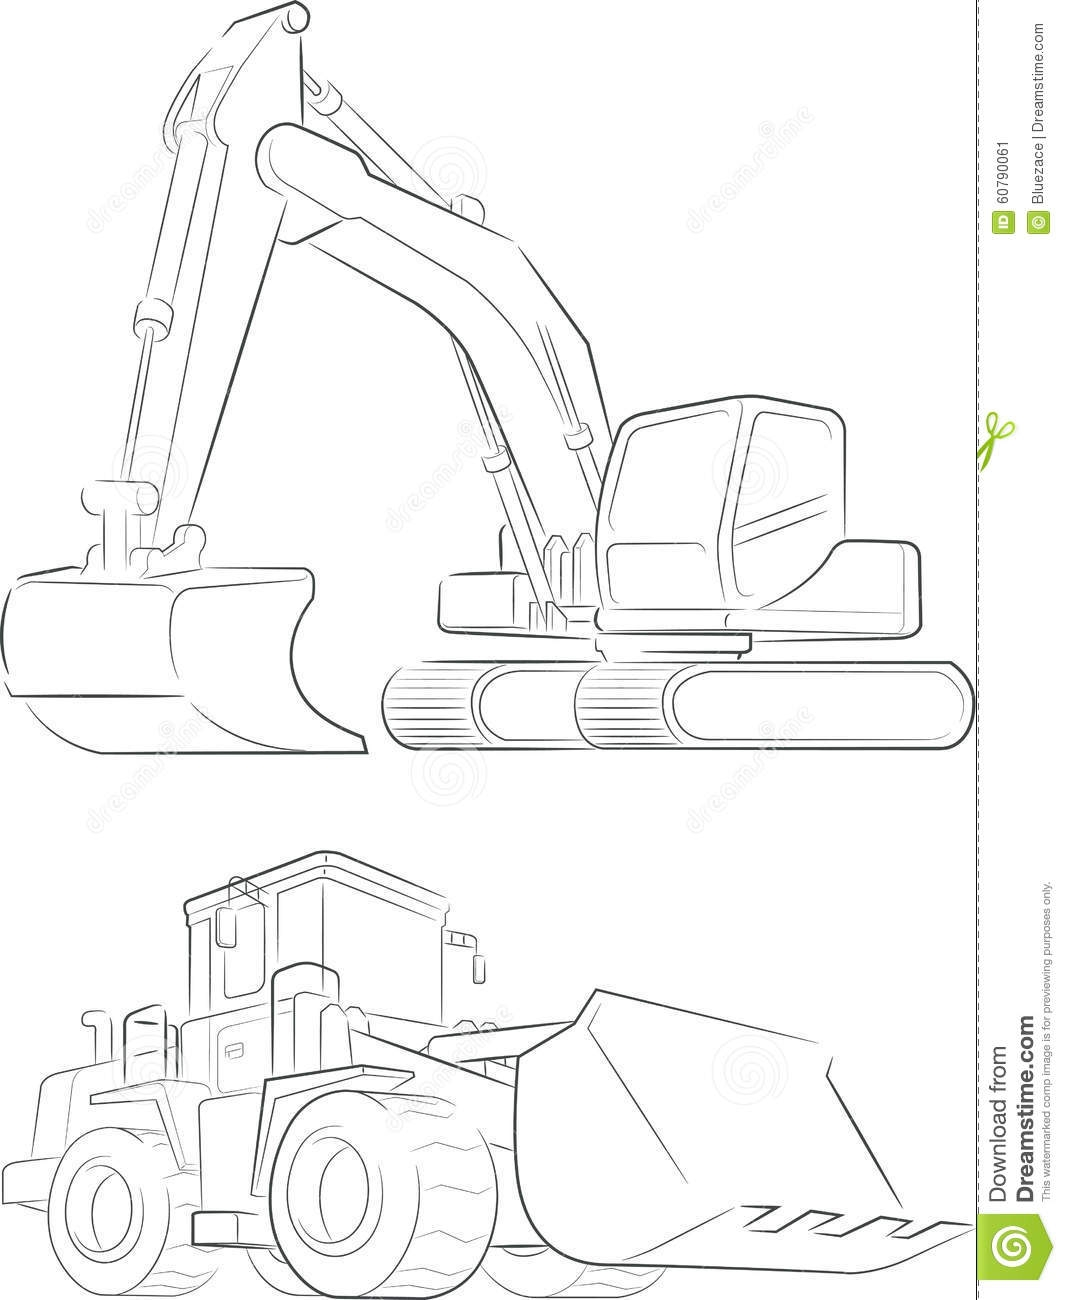 bulldozer coloring pages - stock illustration bulldozer excavator vector line art image sketch very good design needs outline image